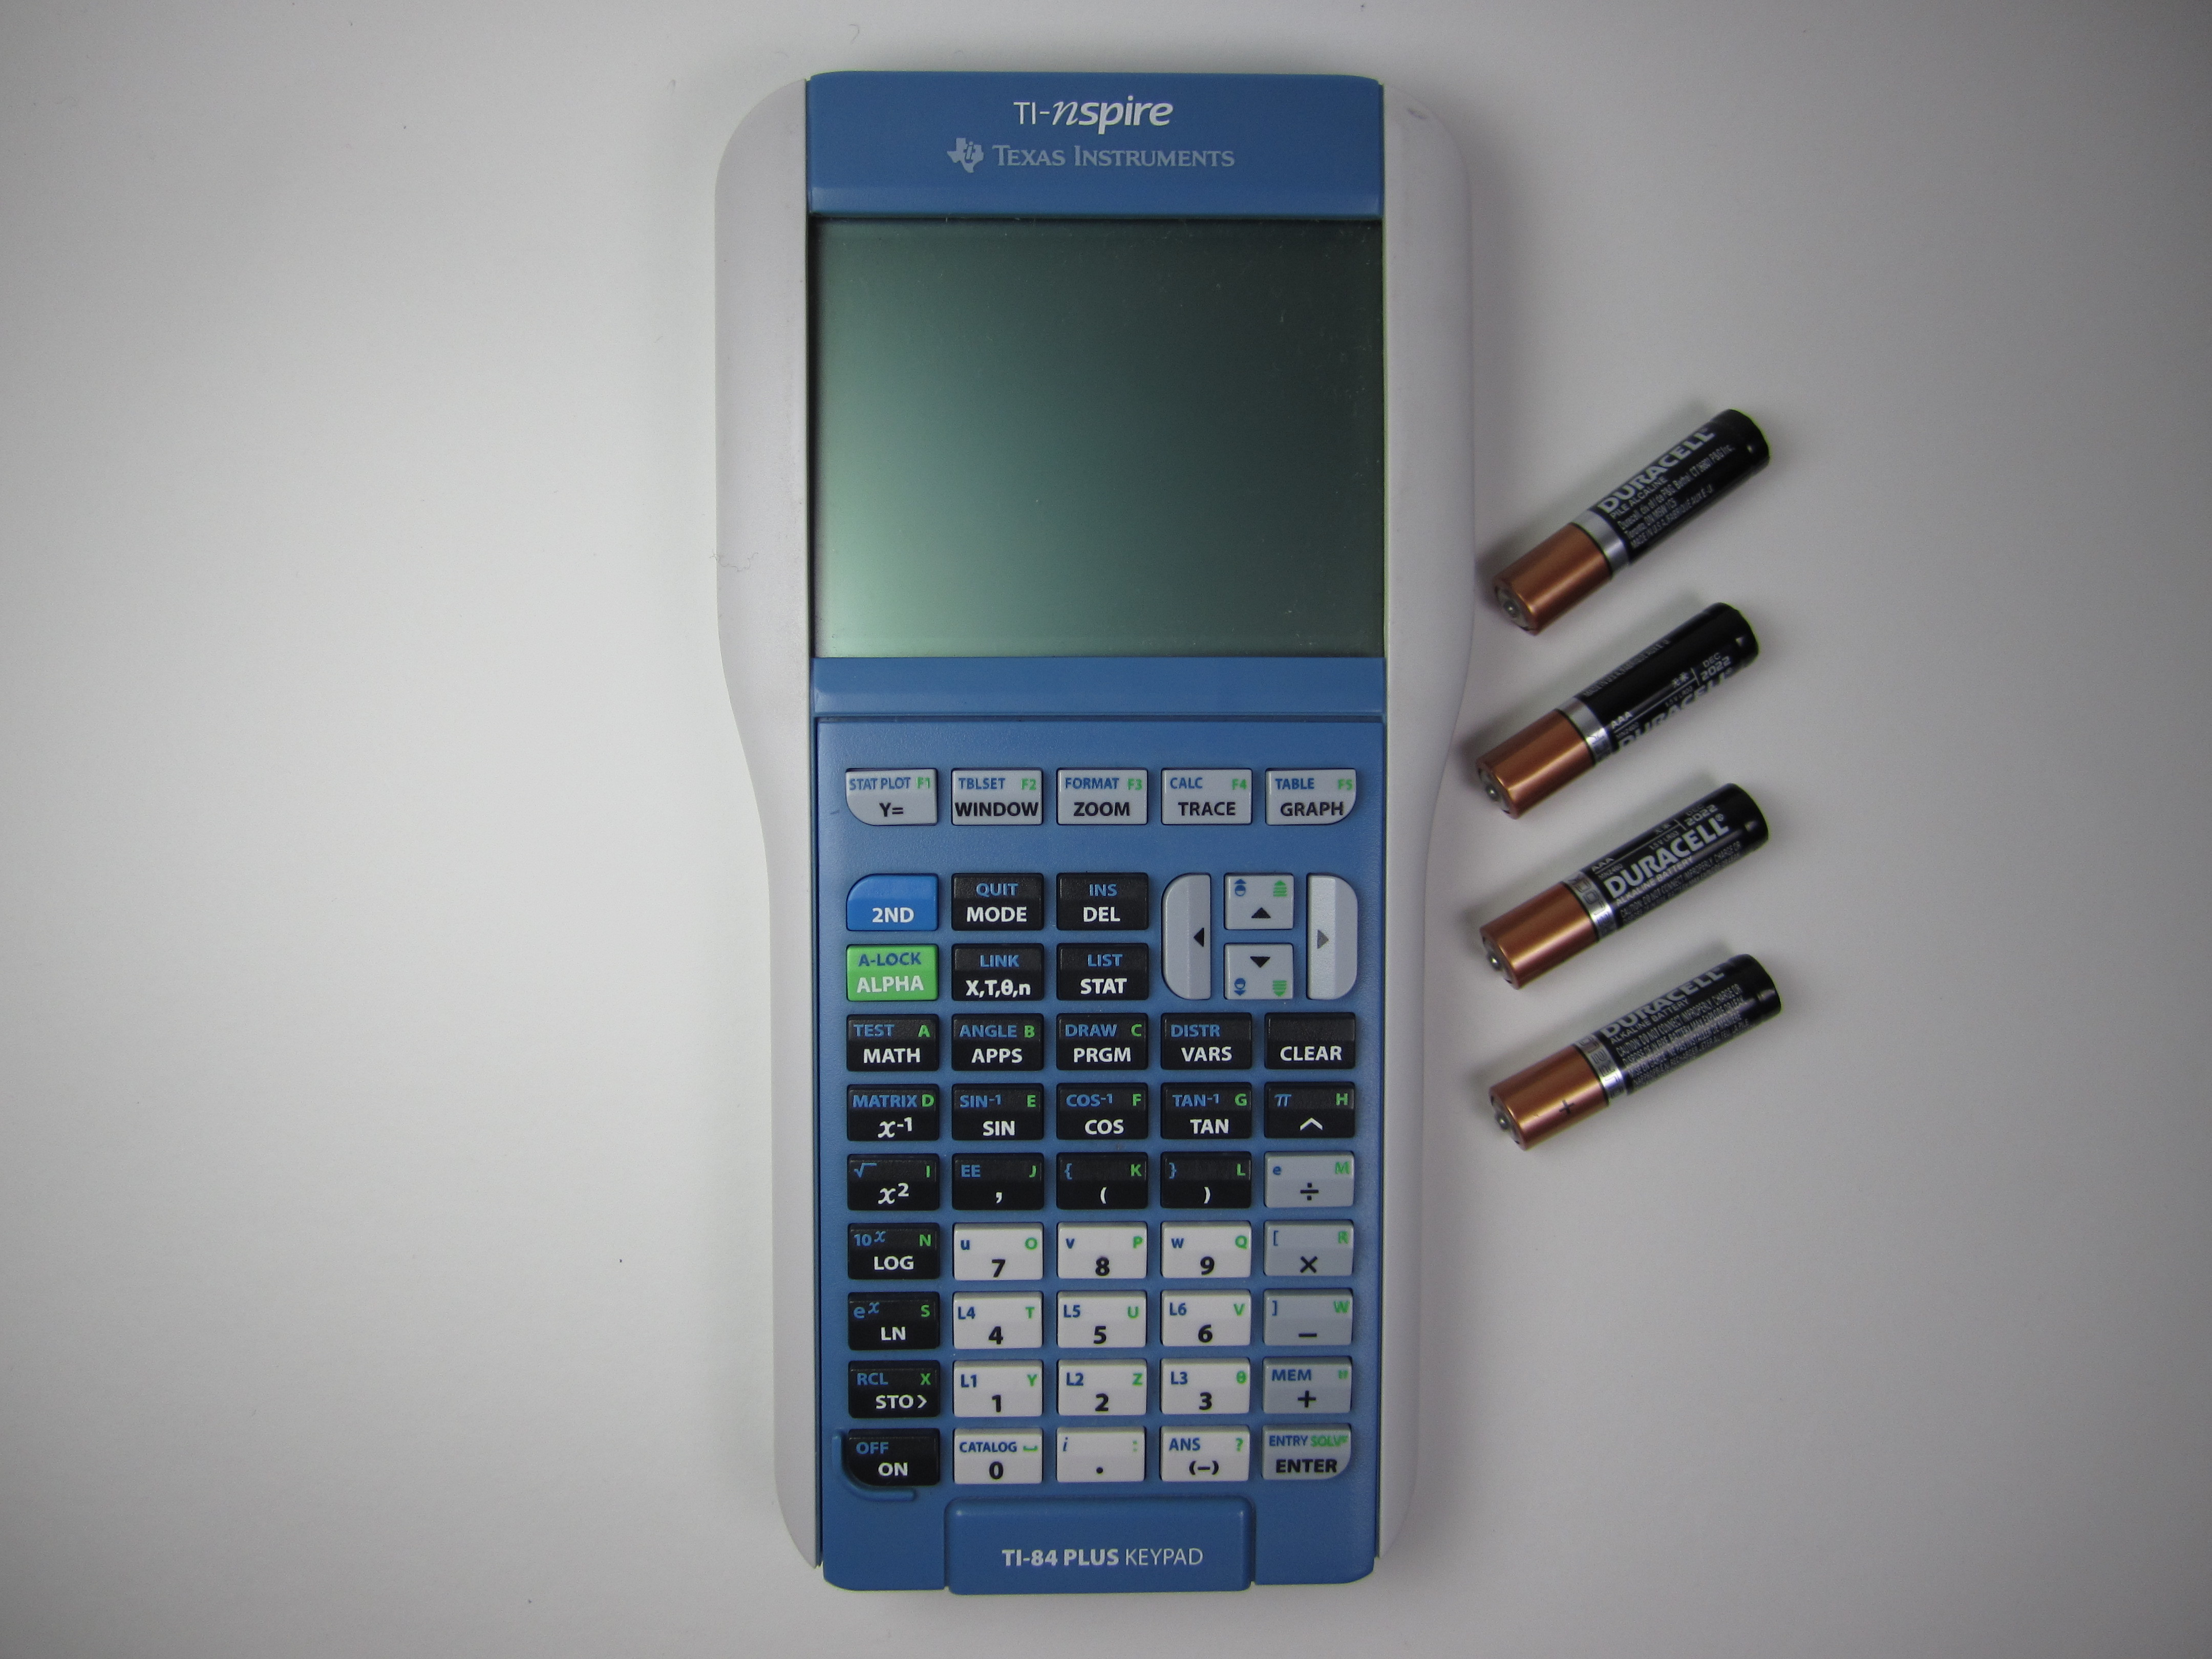 smt1500 battery replacement instructions